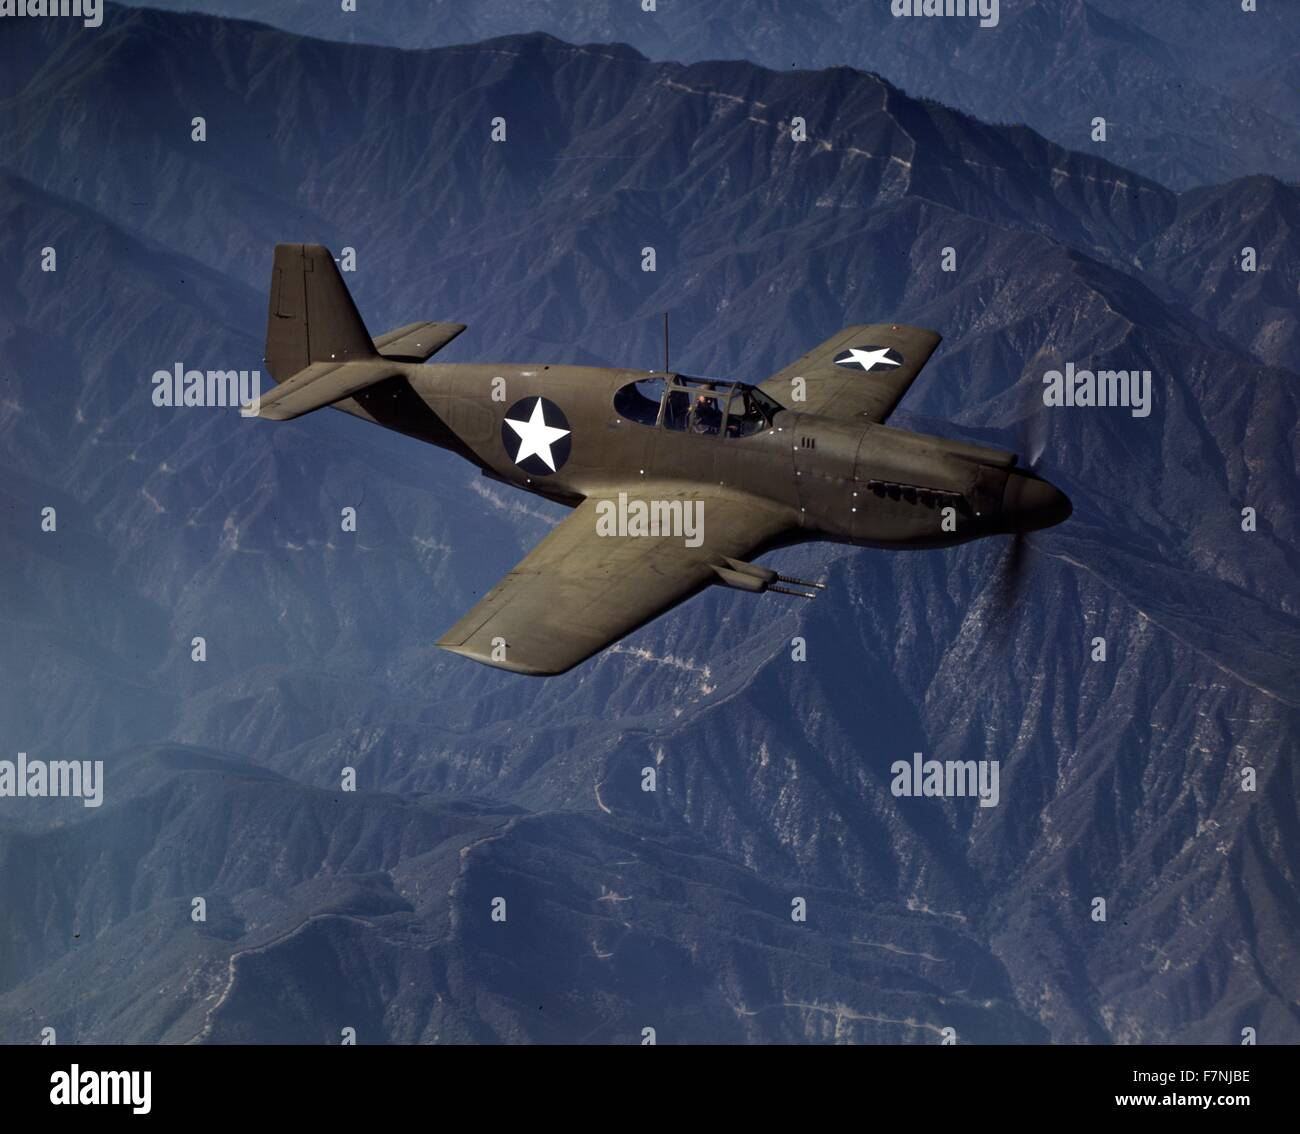 World War Two: P-51 'Mustang' fighter in flight, Inglewoof, Calif. The 'Mustang', built by North - Stock Image